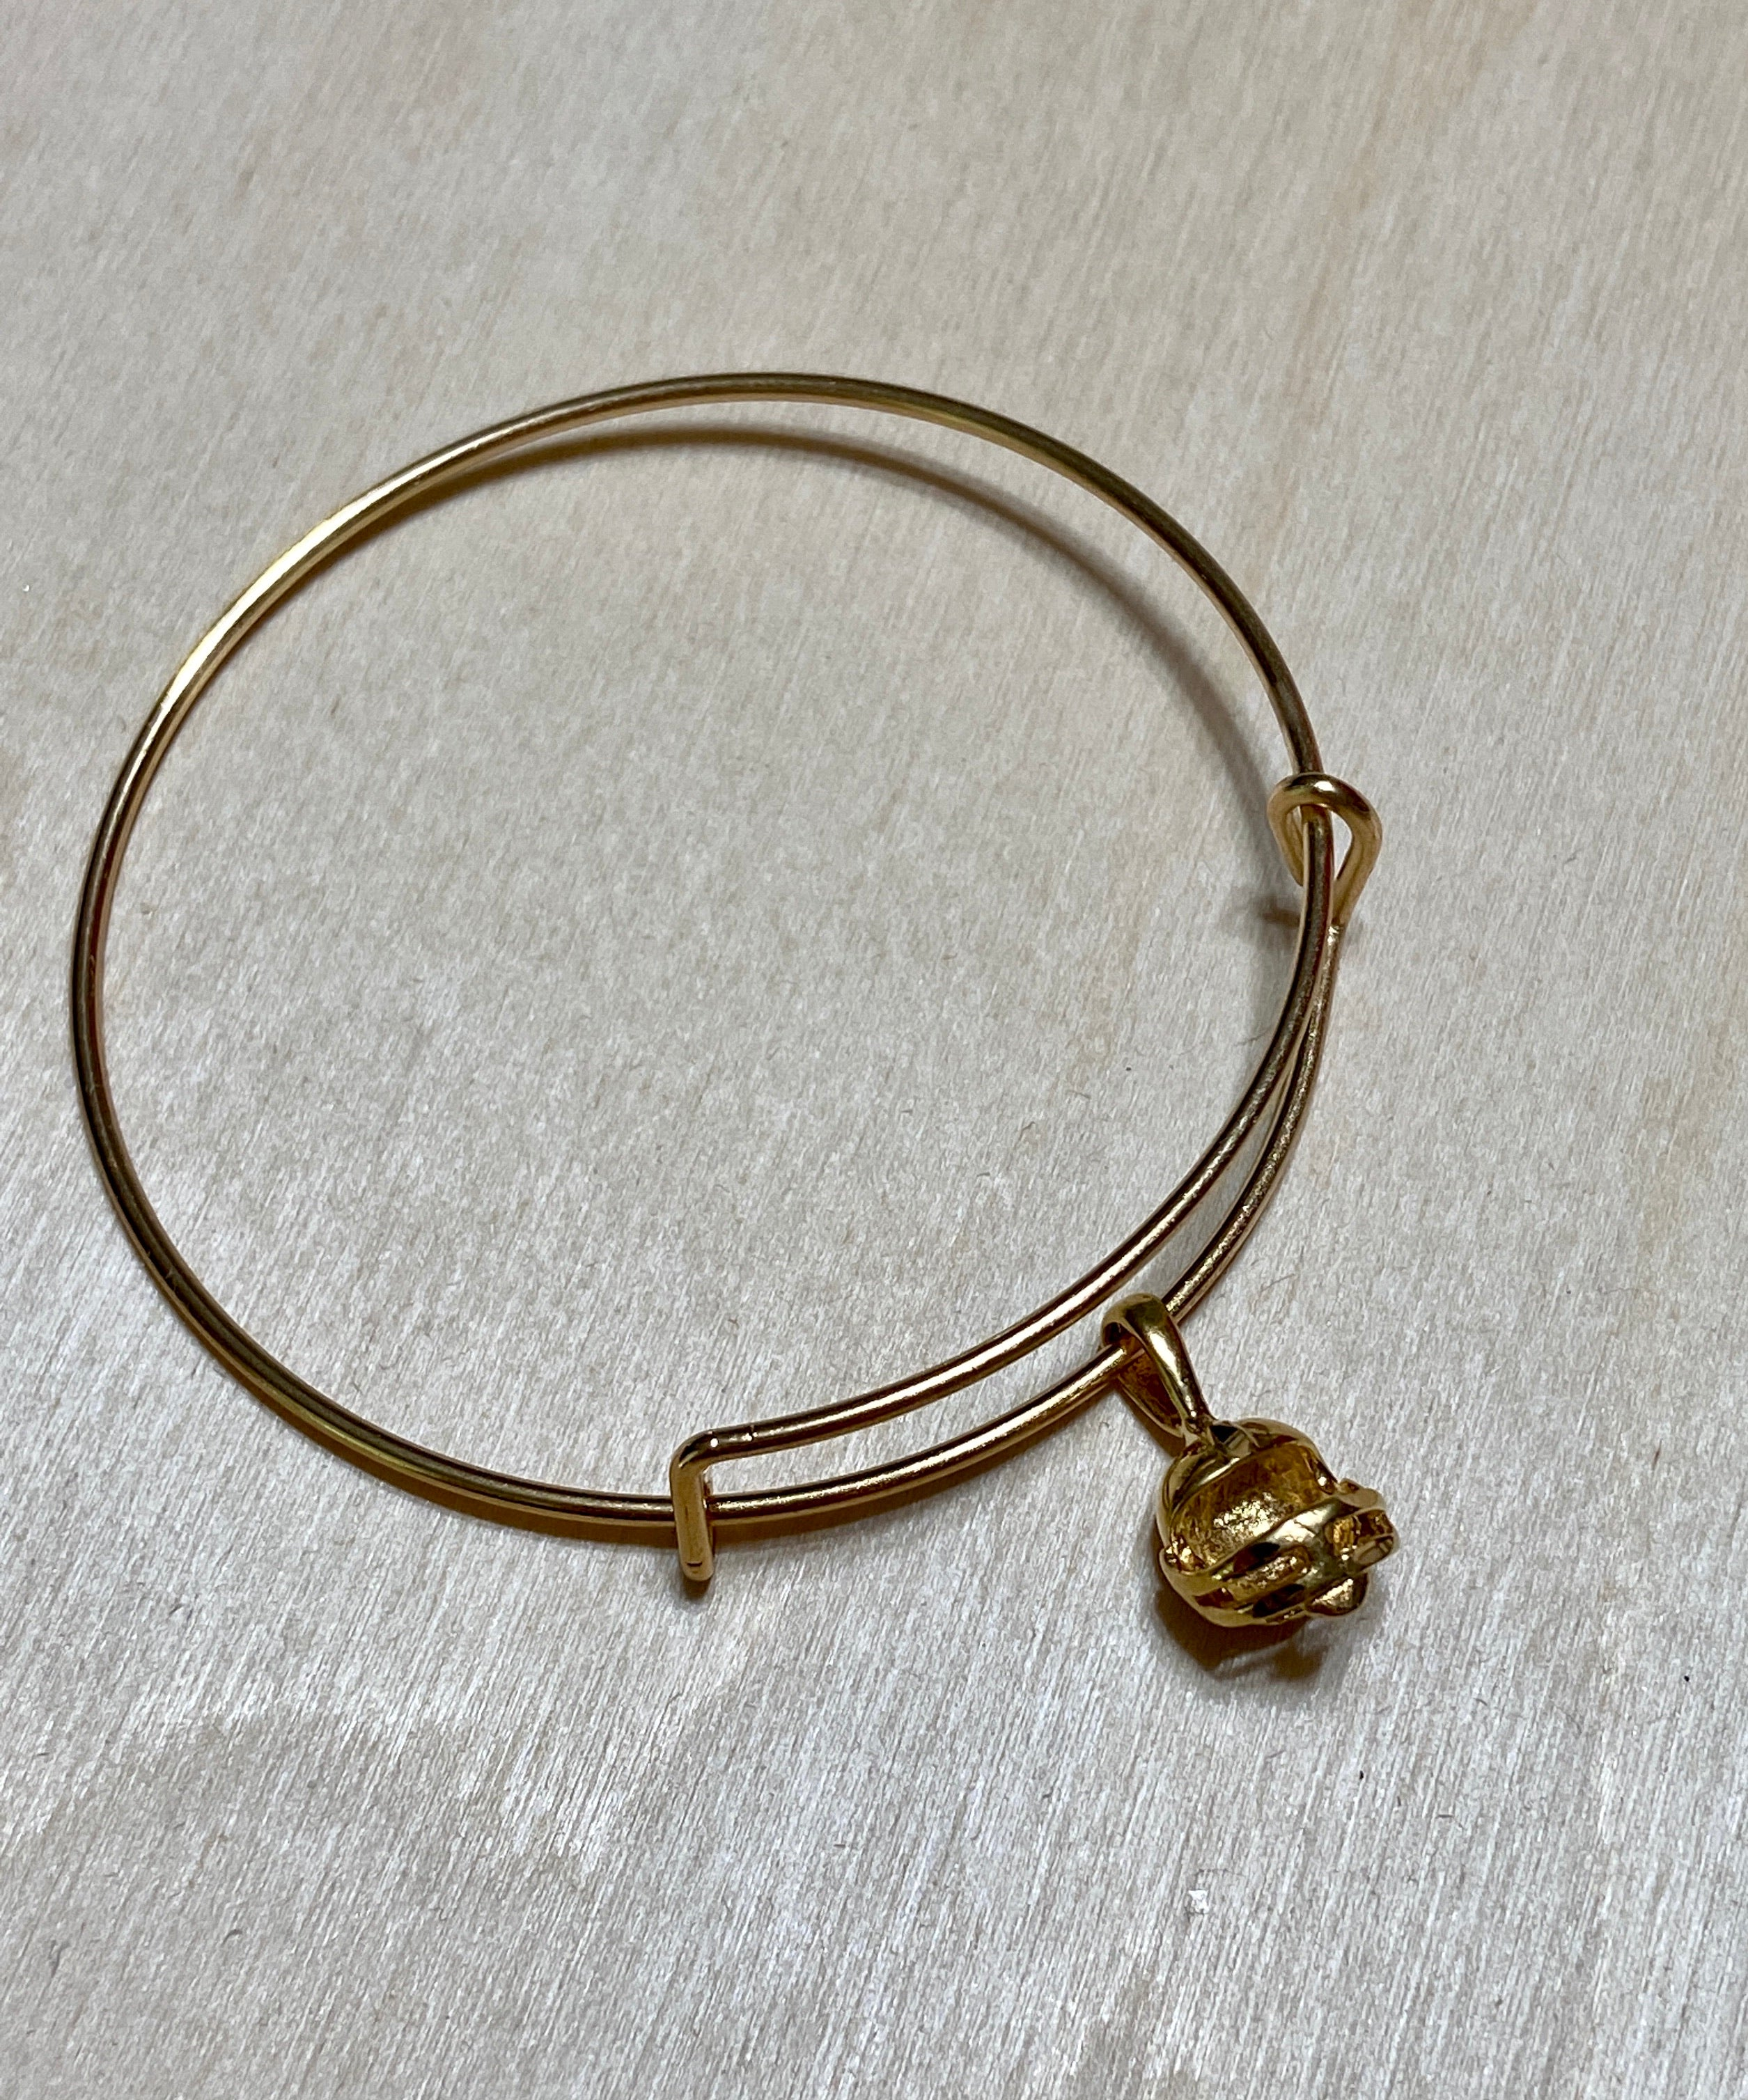 Football Gold Plated Charm Bracelet